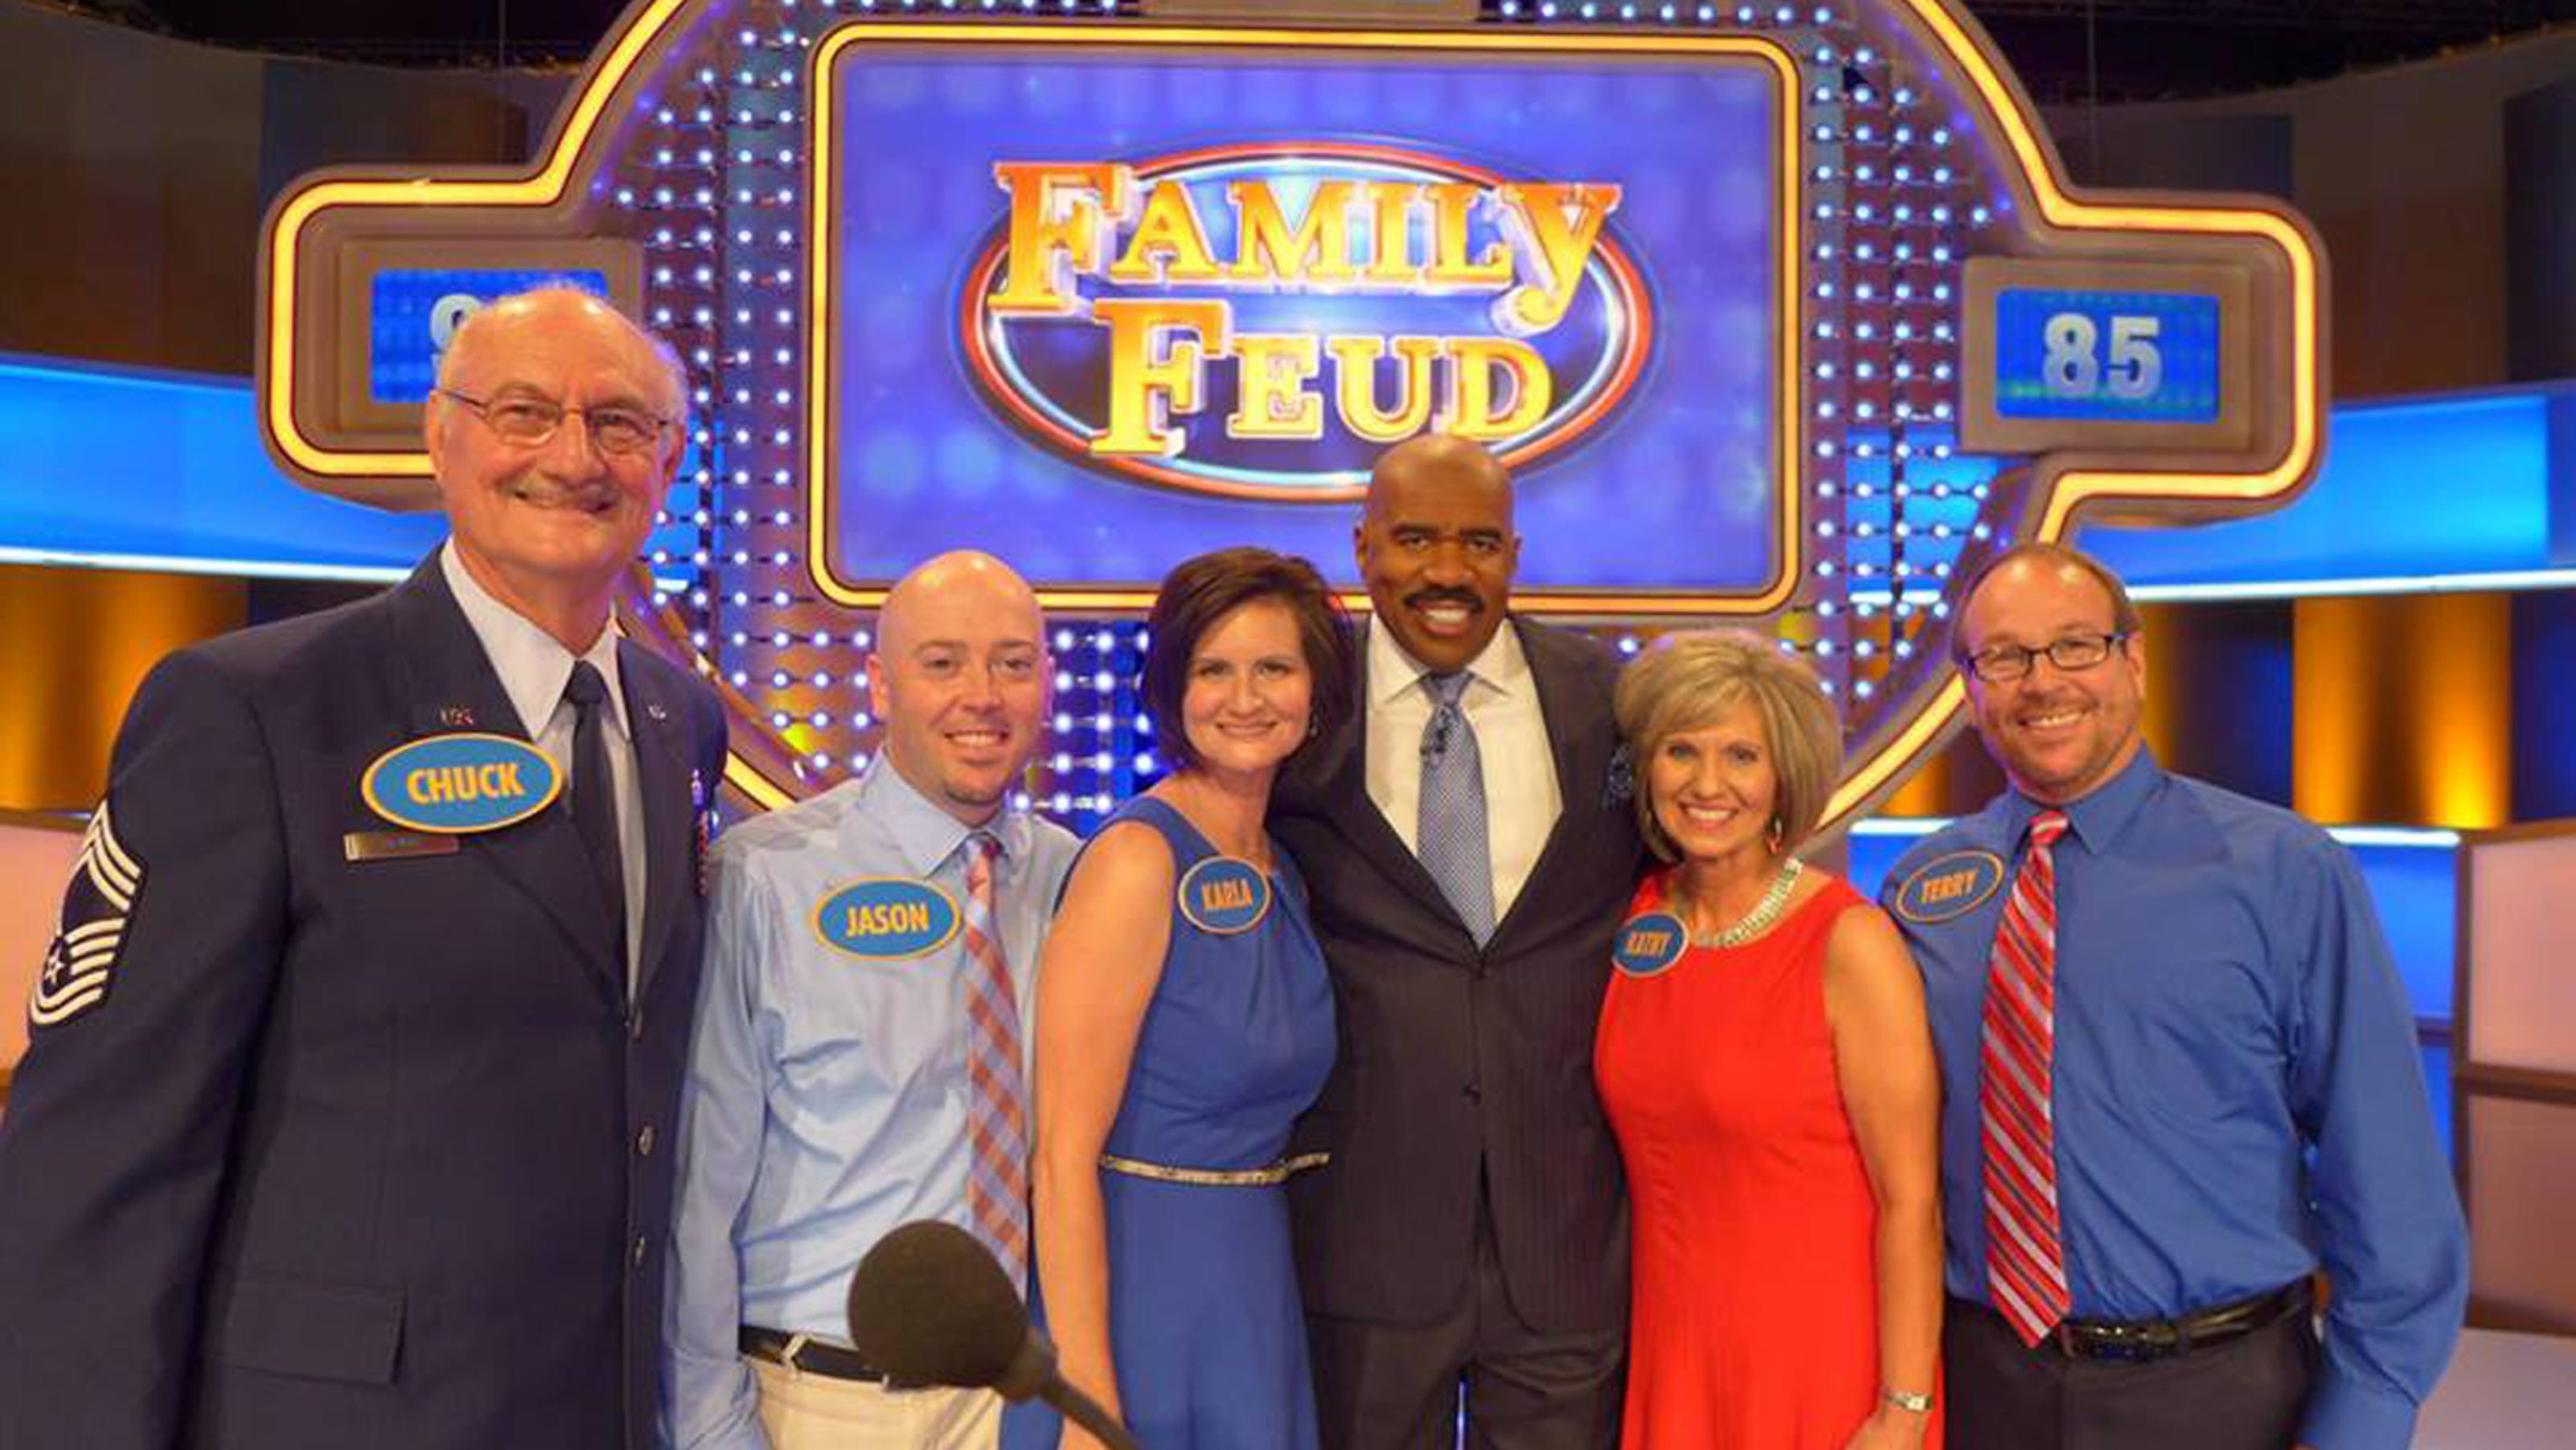 facebook family feud fast - photo #34